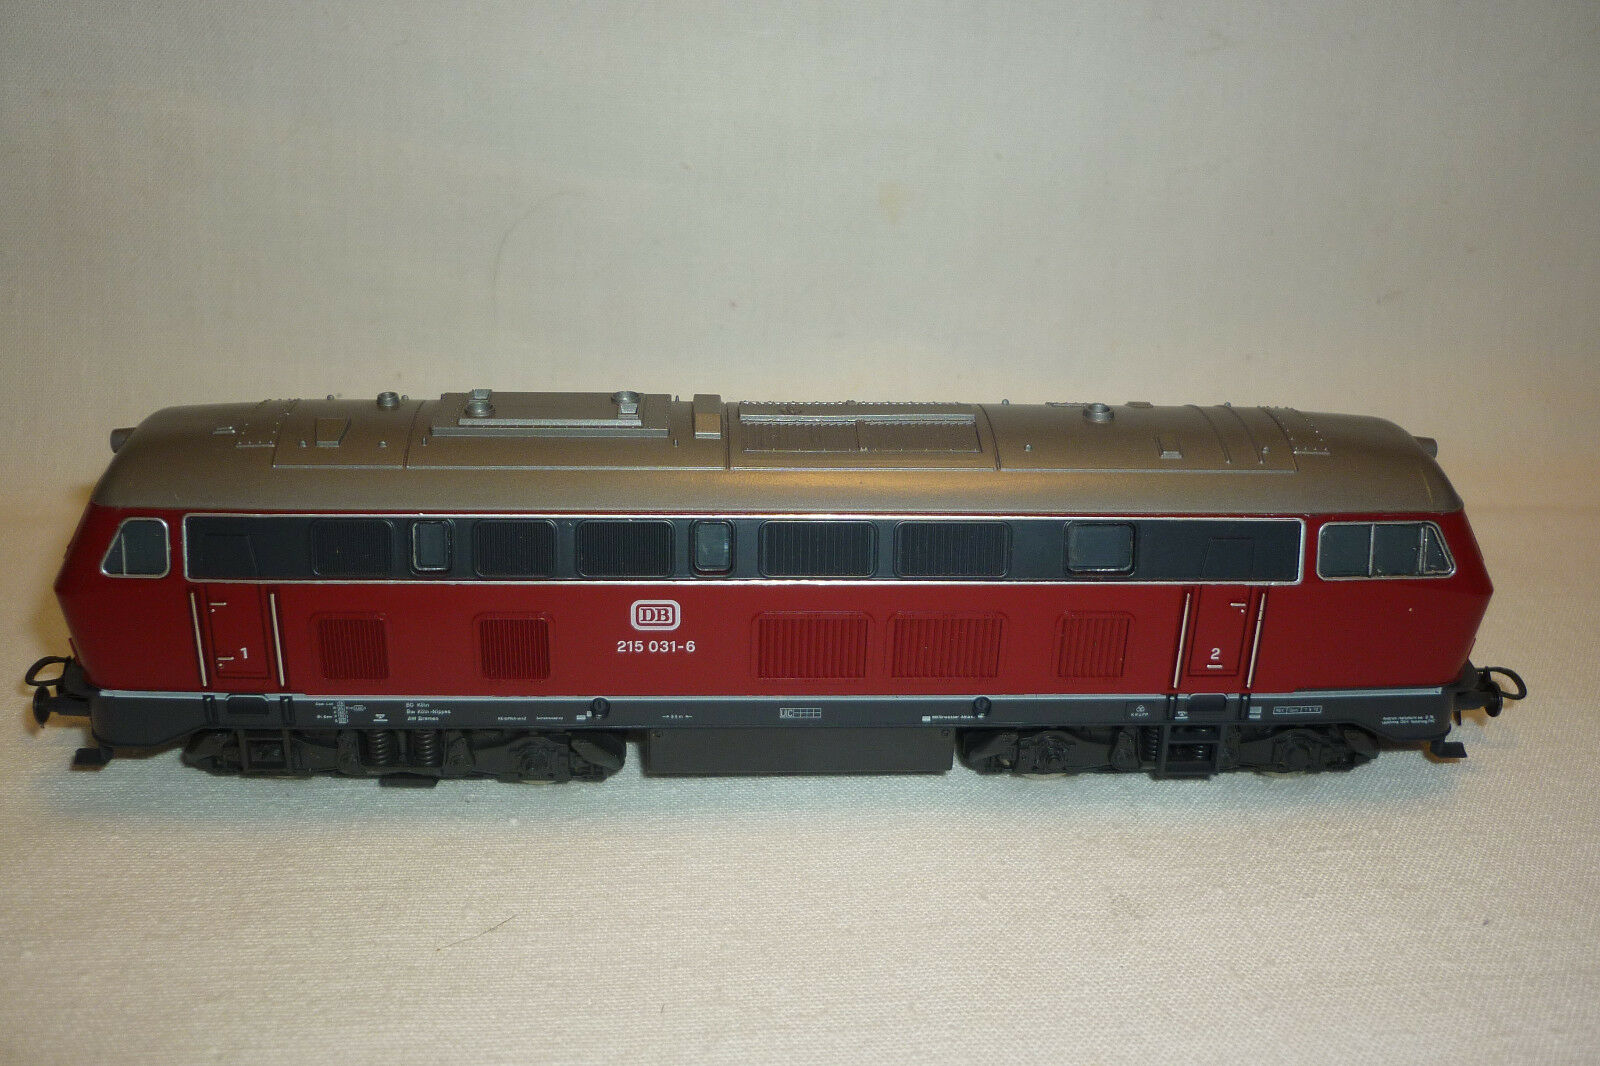 H0 scale-roco-Diesel locomotive-DB 215 031-6 (6.ei-100)